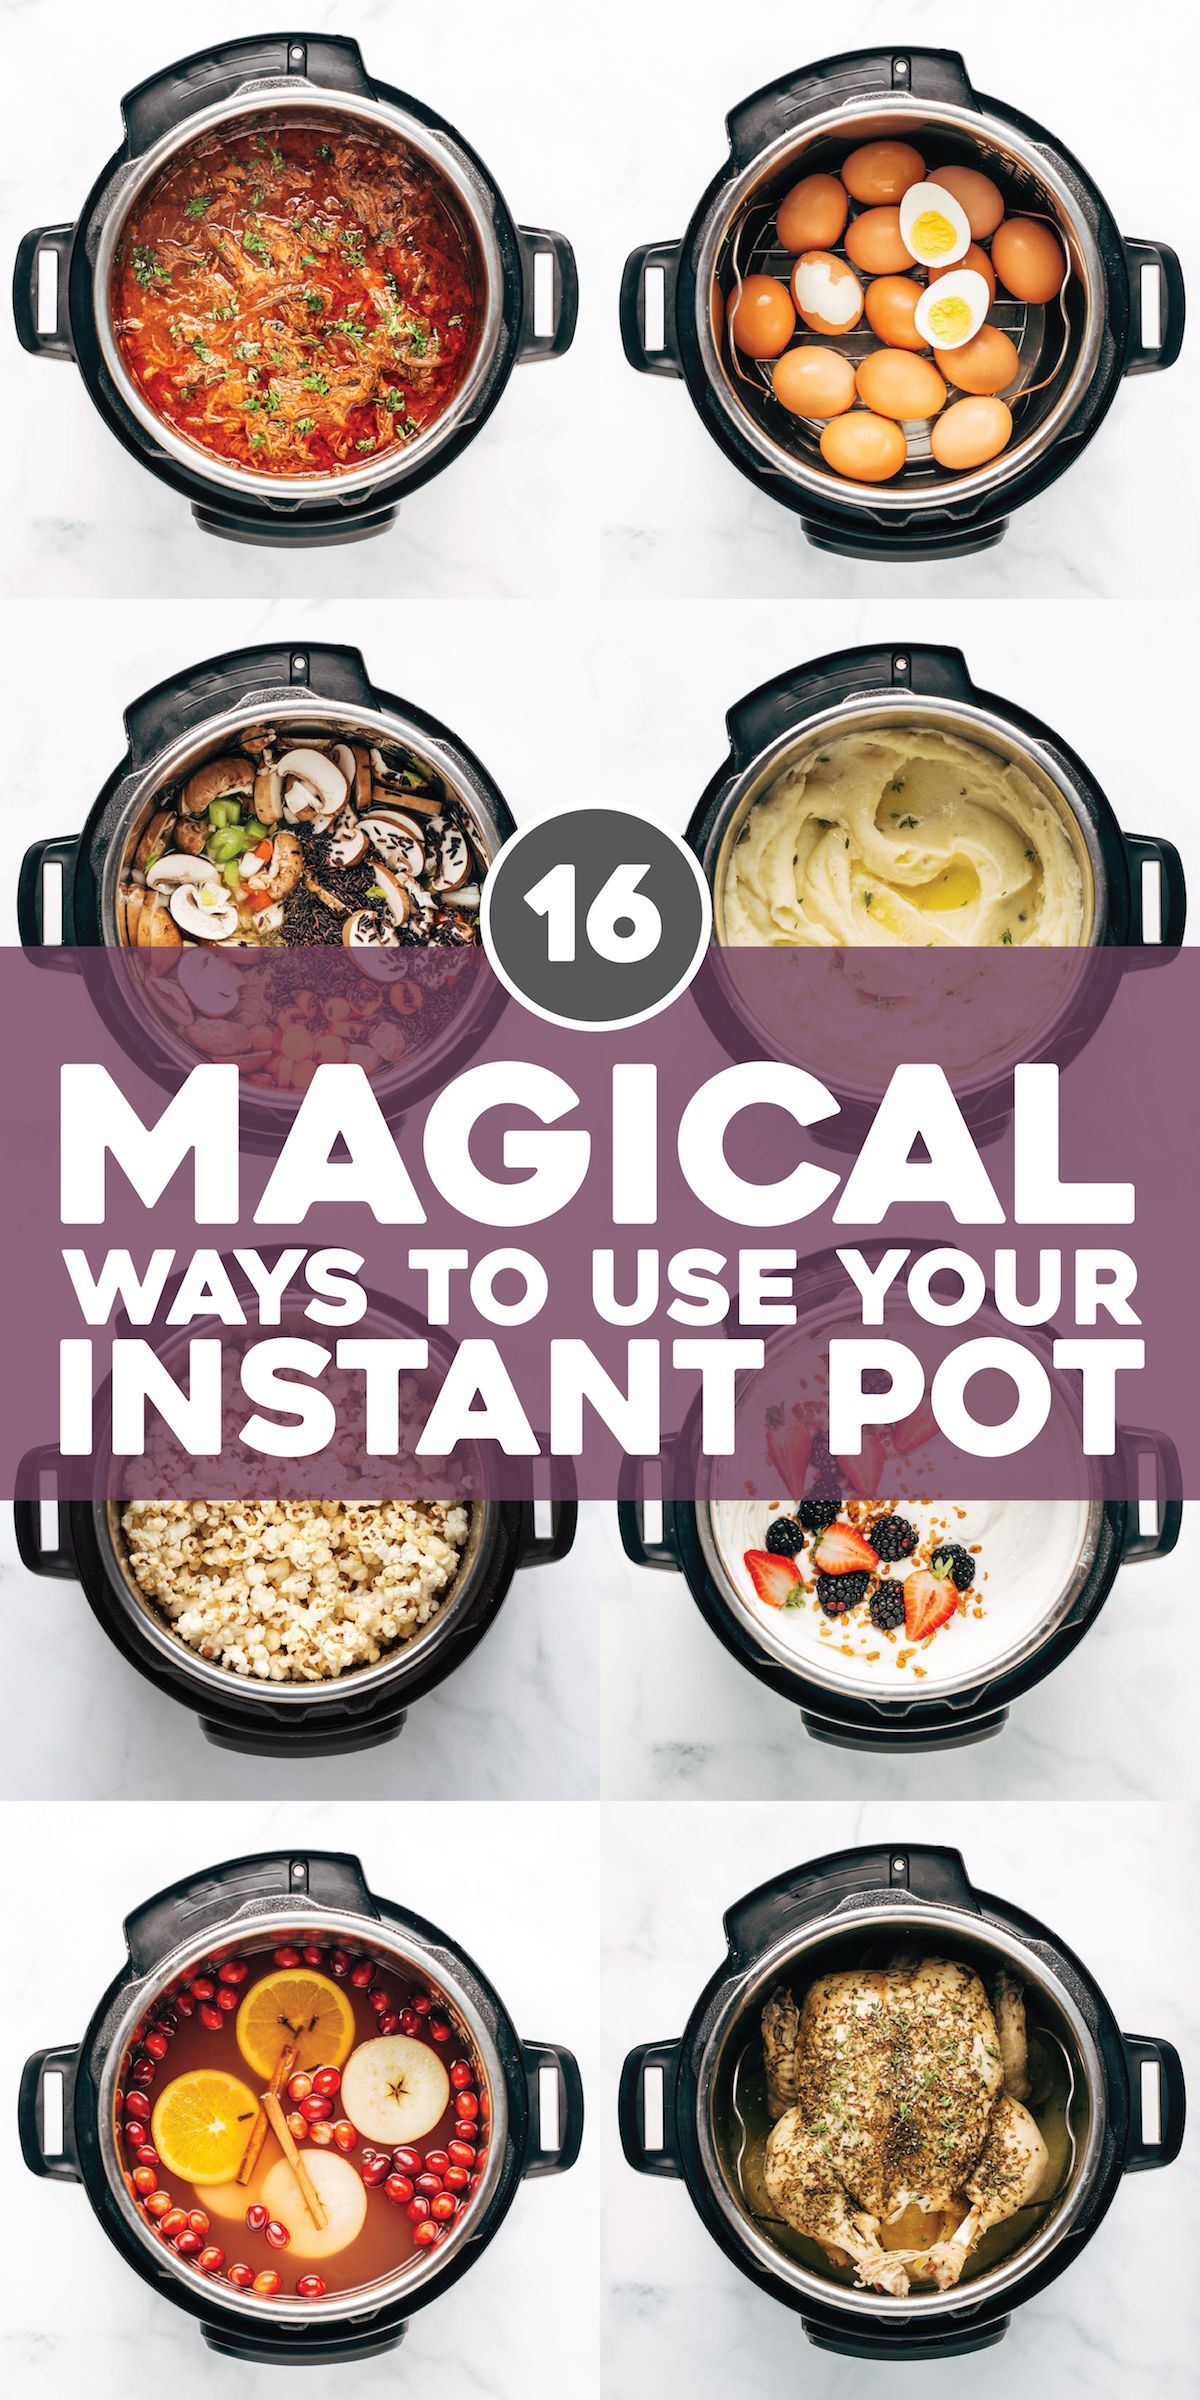 16 Magical Ways to Use Your Instant Pot